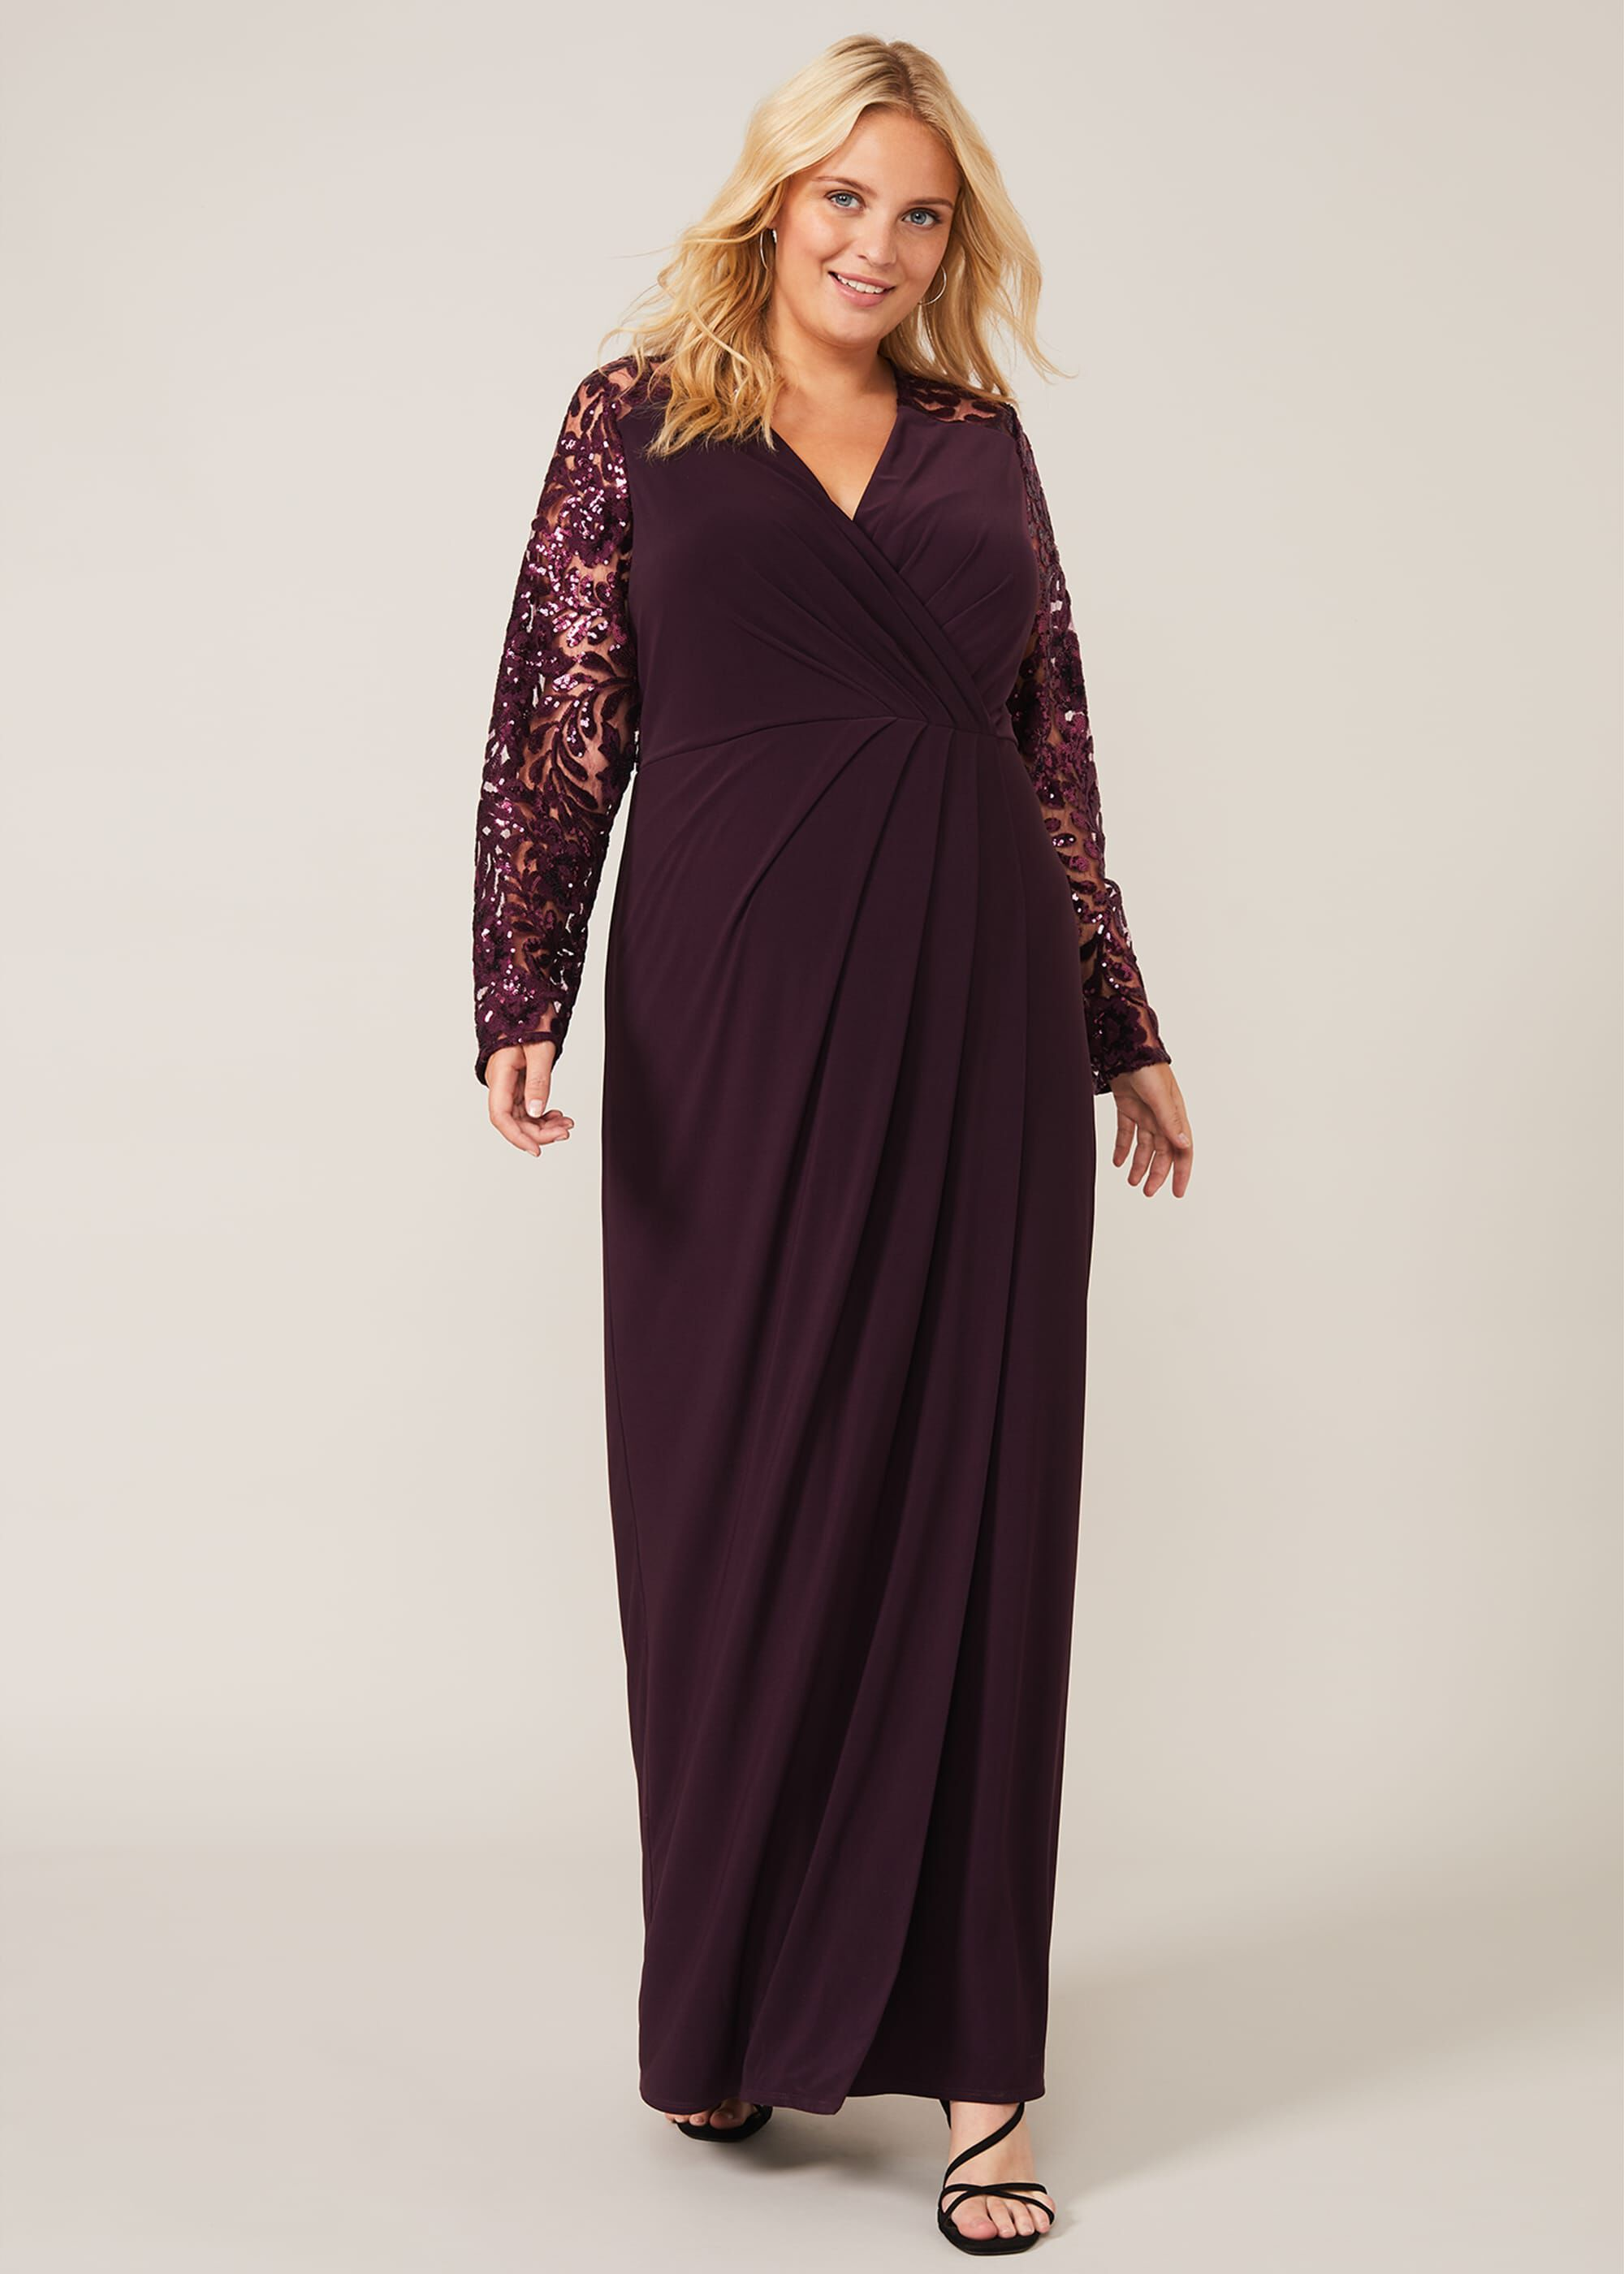 Studio 8 Melony Sequin Sleeve Maxi Dress, Purple, Maxi